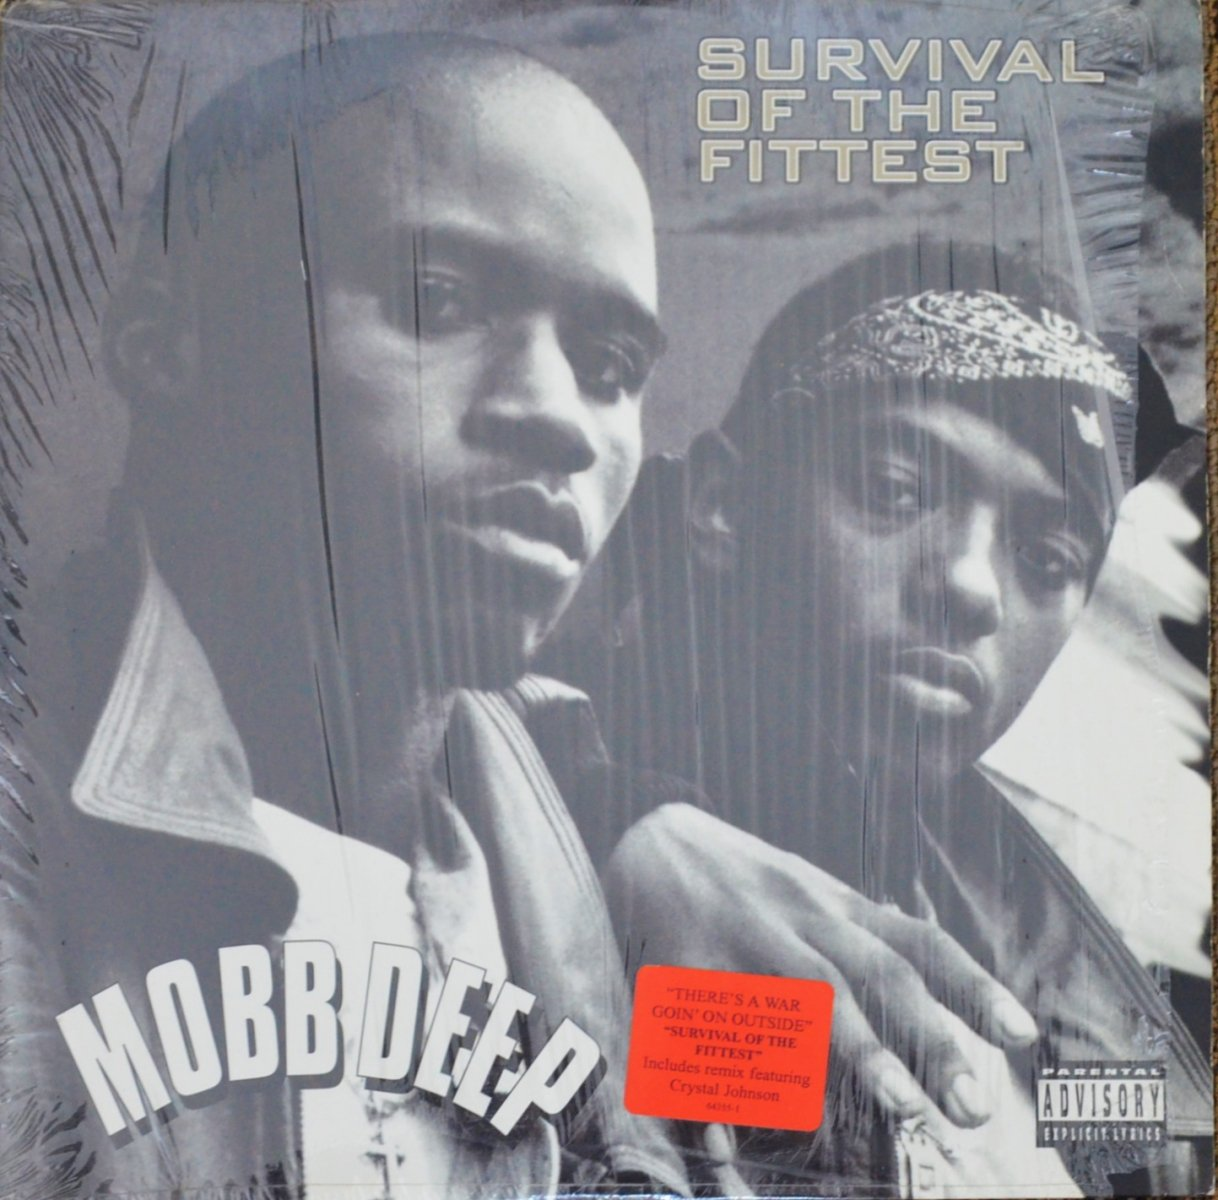 MOBB DEEP ‎/ SURVIVAL OF THE FITTEST (12